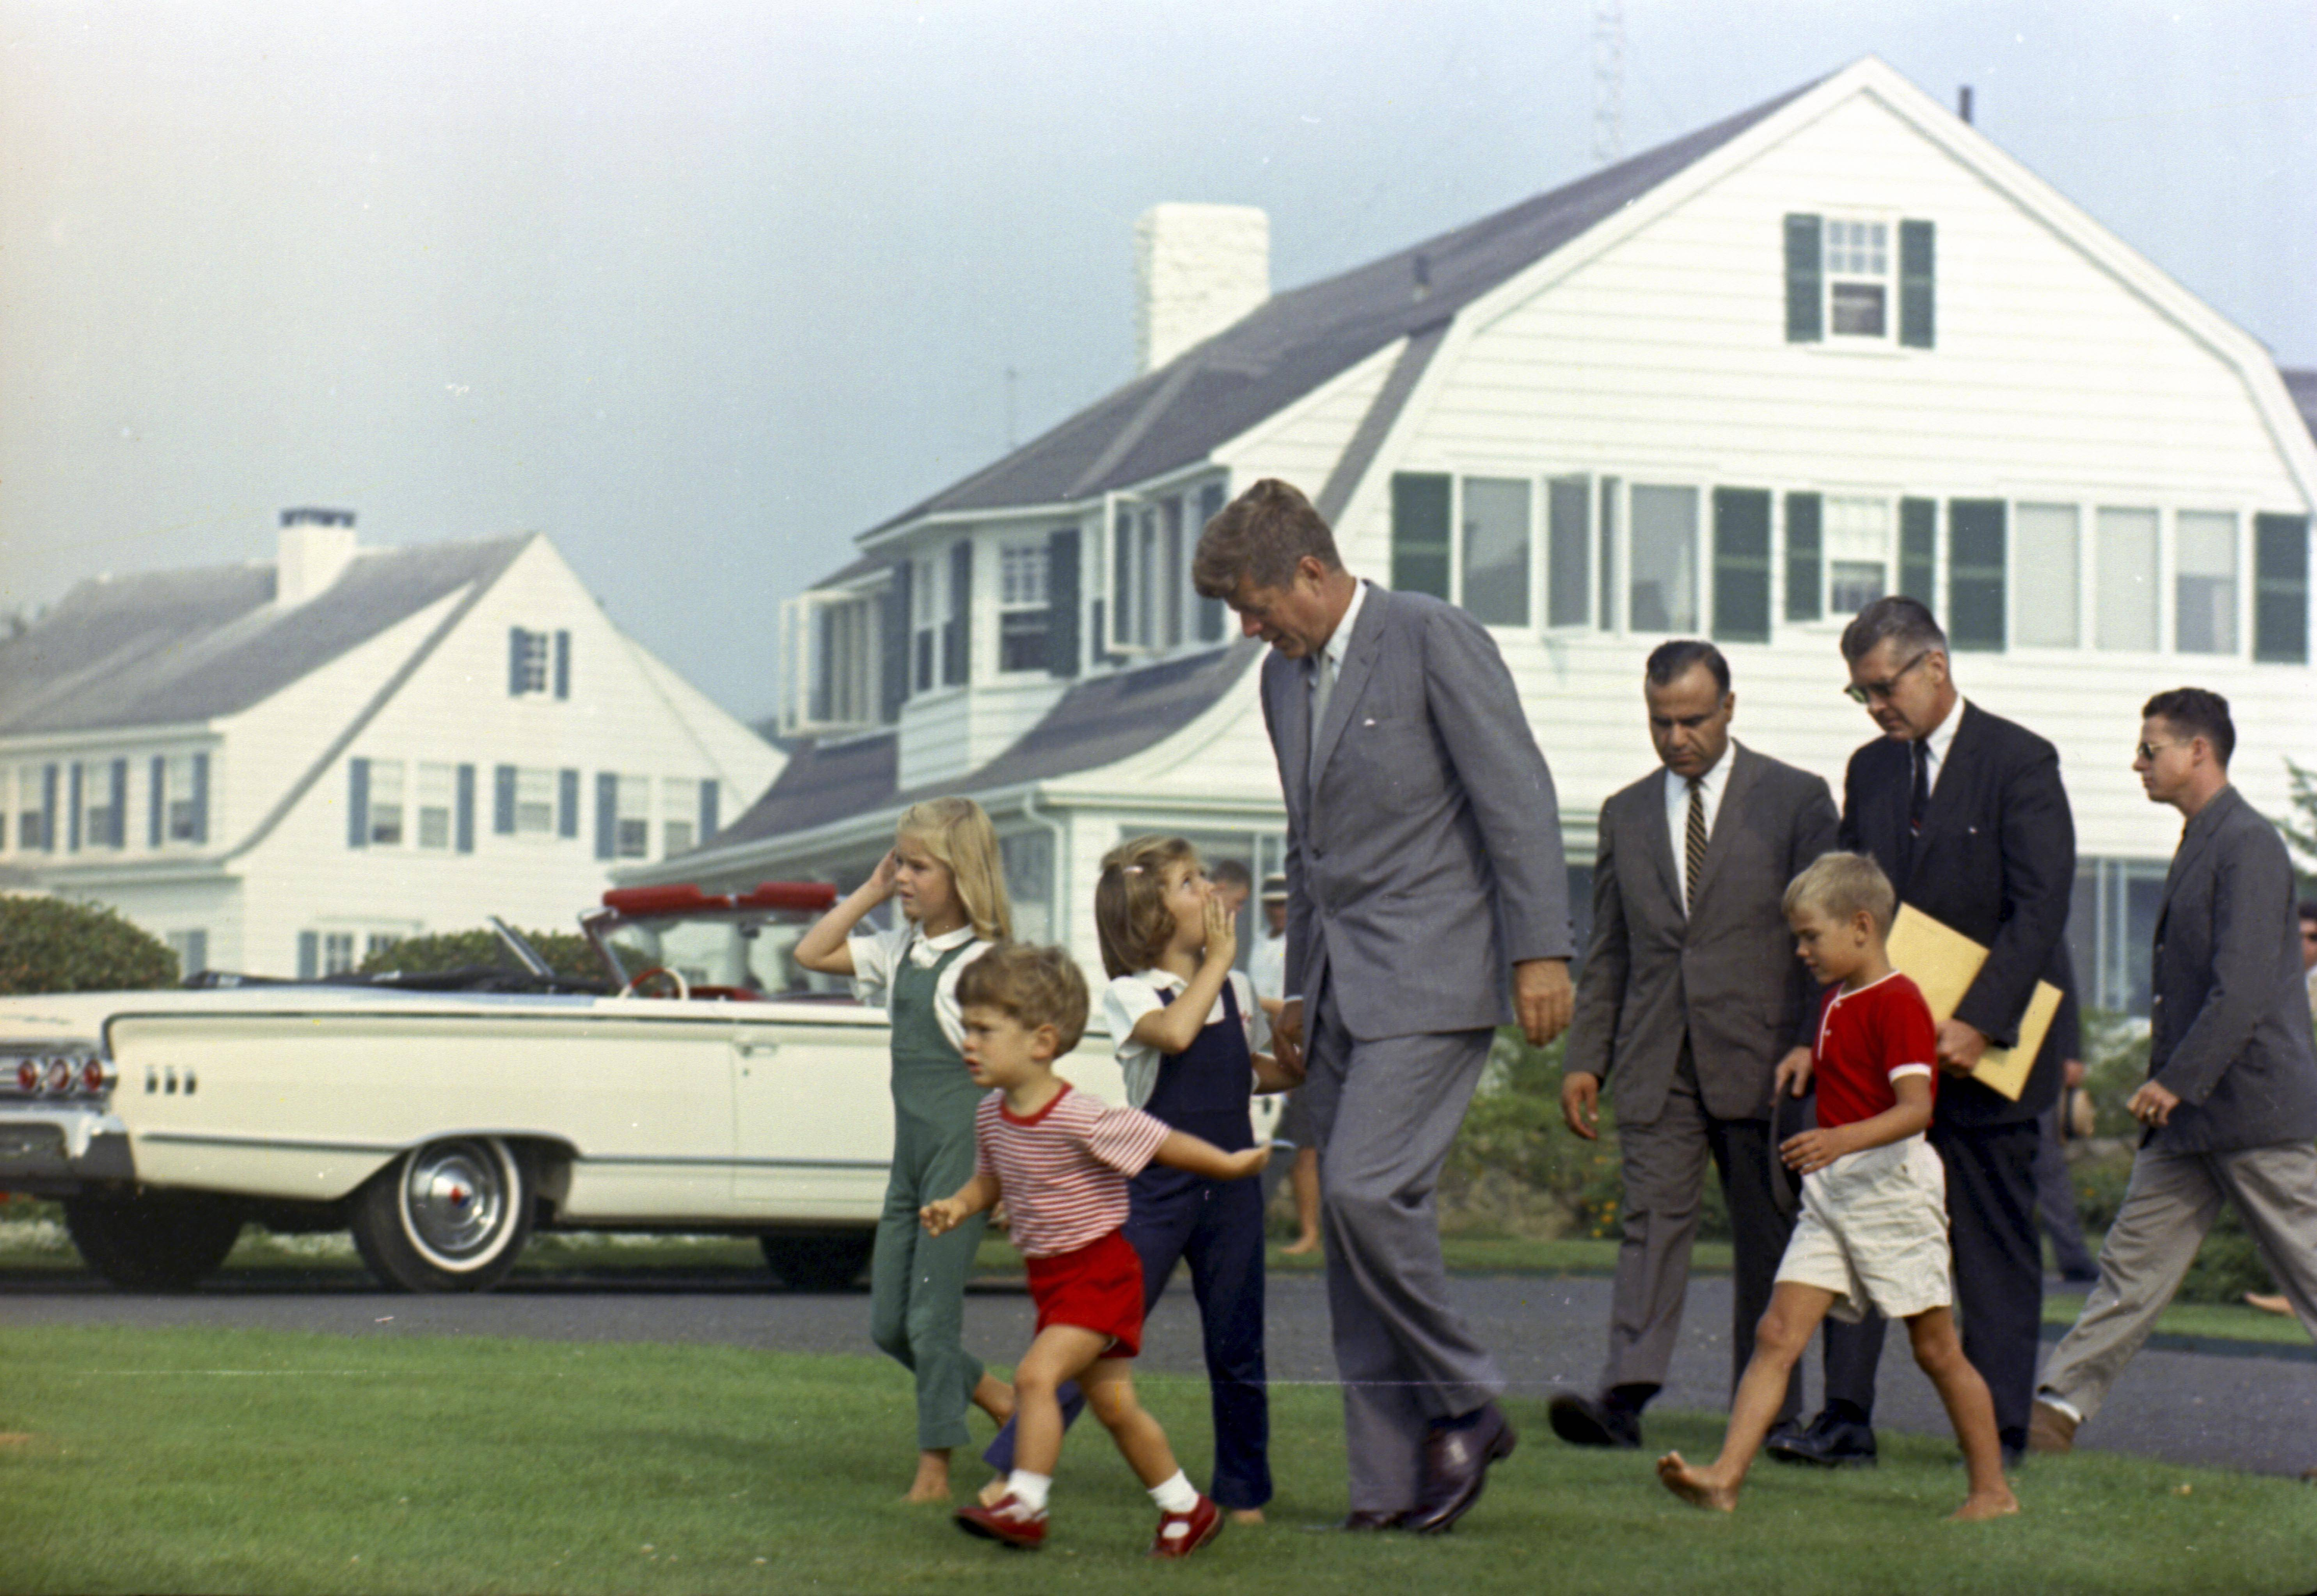 President Kennedy approaches a helicopter at the family home in Hyannis Port, Mass., for the first leg of his journey back to Washington in August 1963. Accompanying him are Sydney Lawford, left, John F. Kennedy Jr., Caroline Kennedy, the President, Secret Service Agent Sam Sulliman, David Kennedy, and Agents Jerry Behn and Tom Wells. The JFK library opened a special exhibit Friday featuring some never-before displayed artifacts from the Kennedy family's summers on Cape Cod.